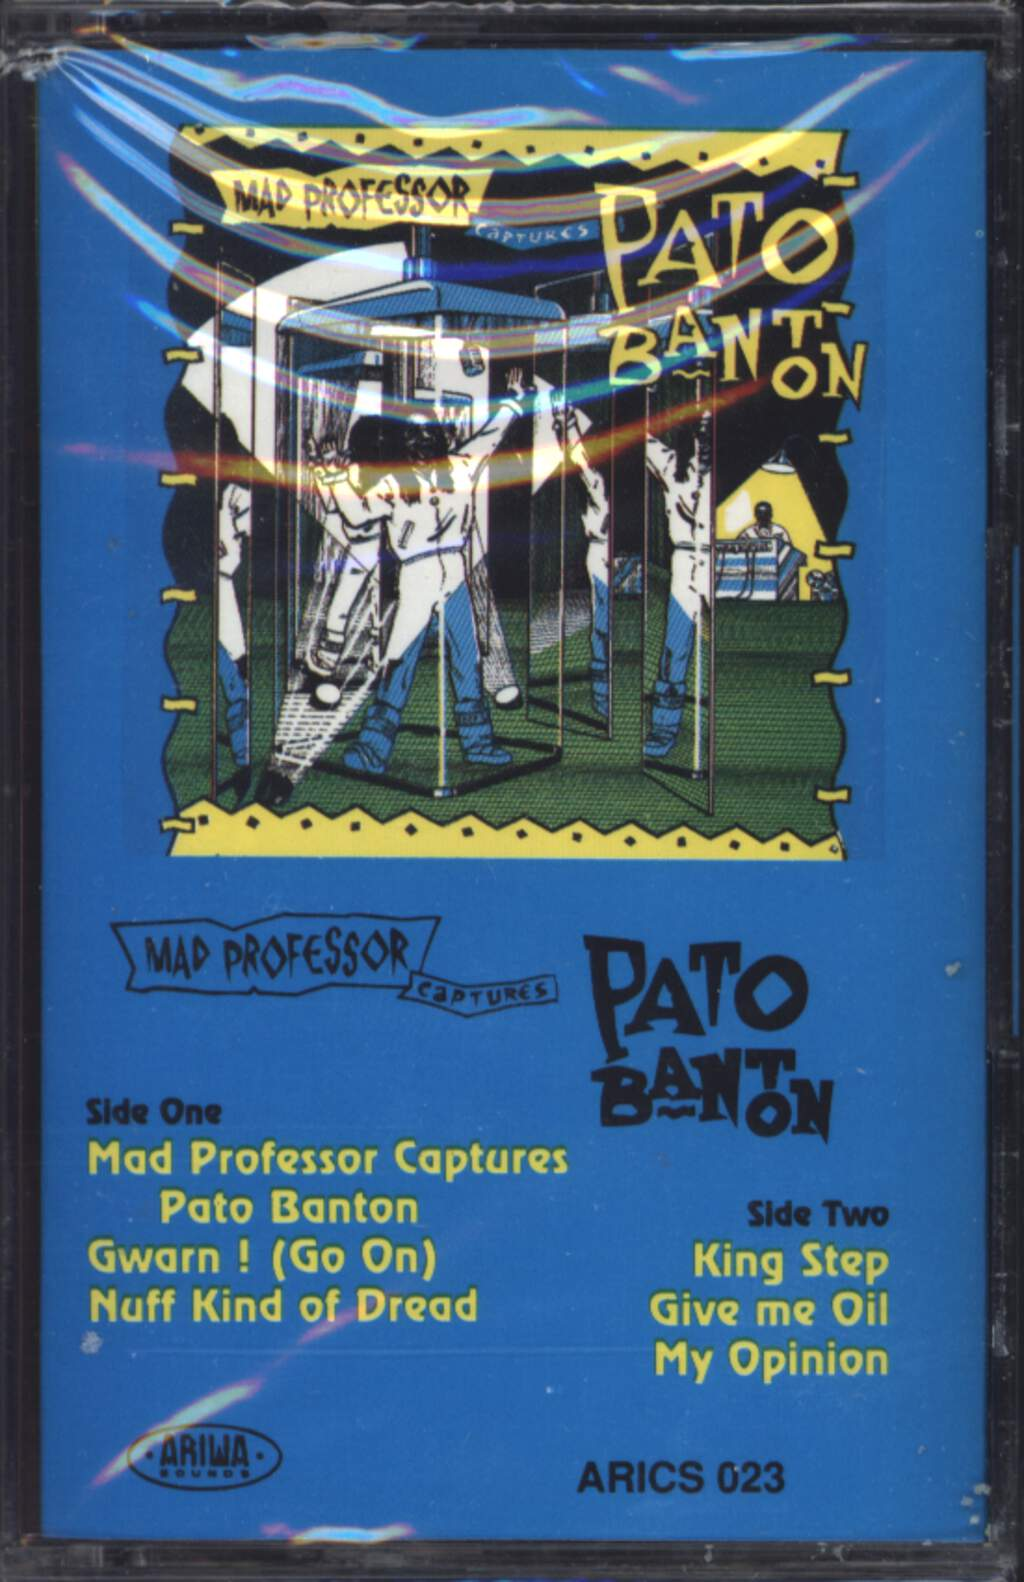 Mad Professor: Mad Professor Captures Pato Banton, Compact Cassette